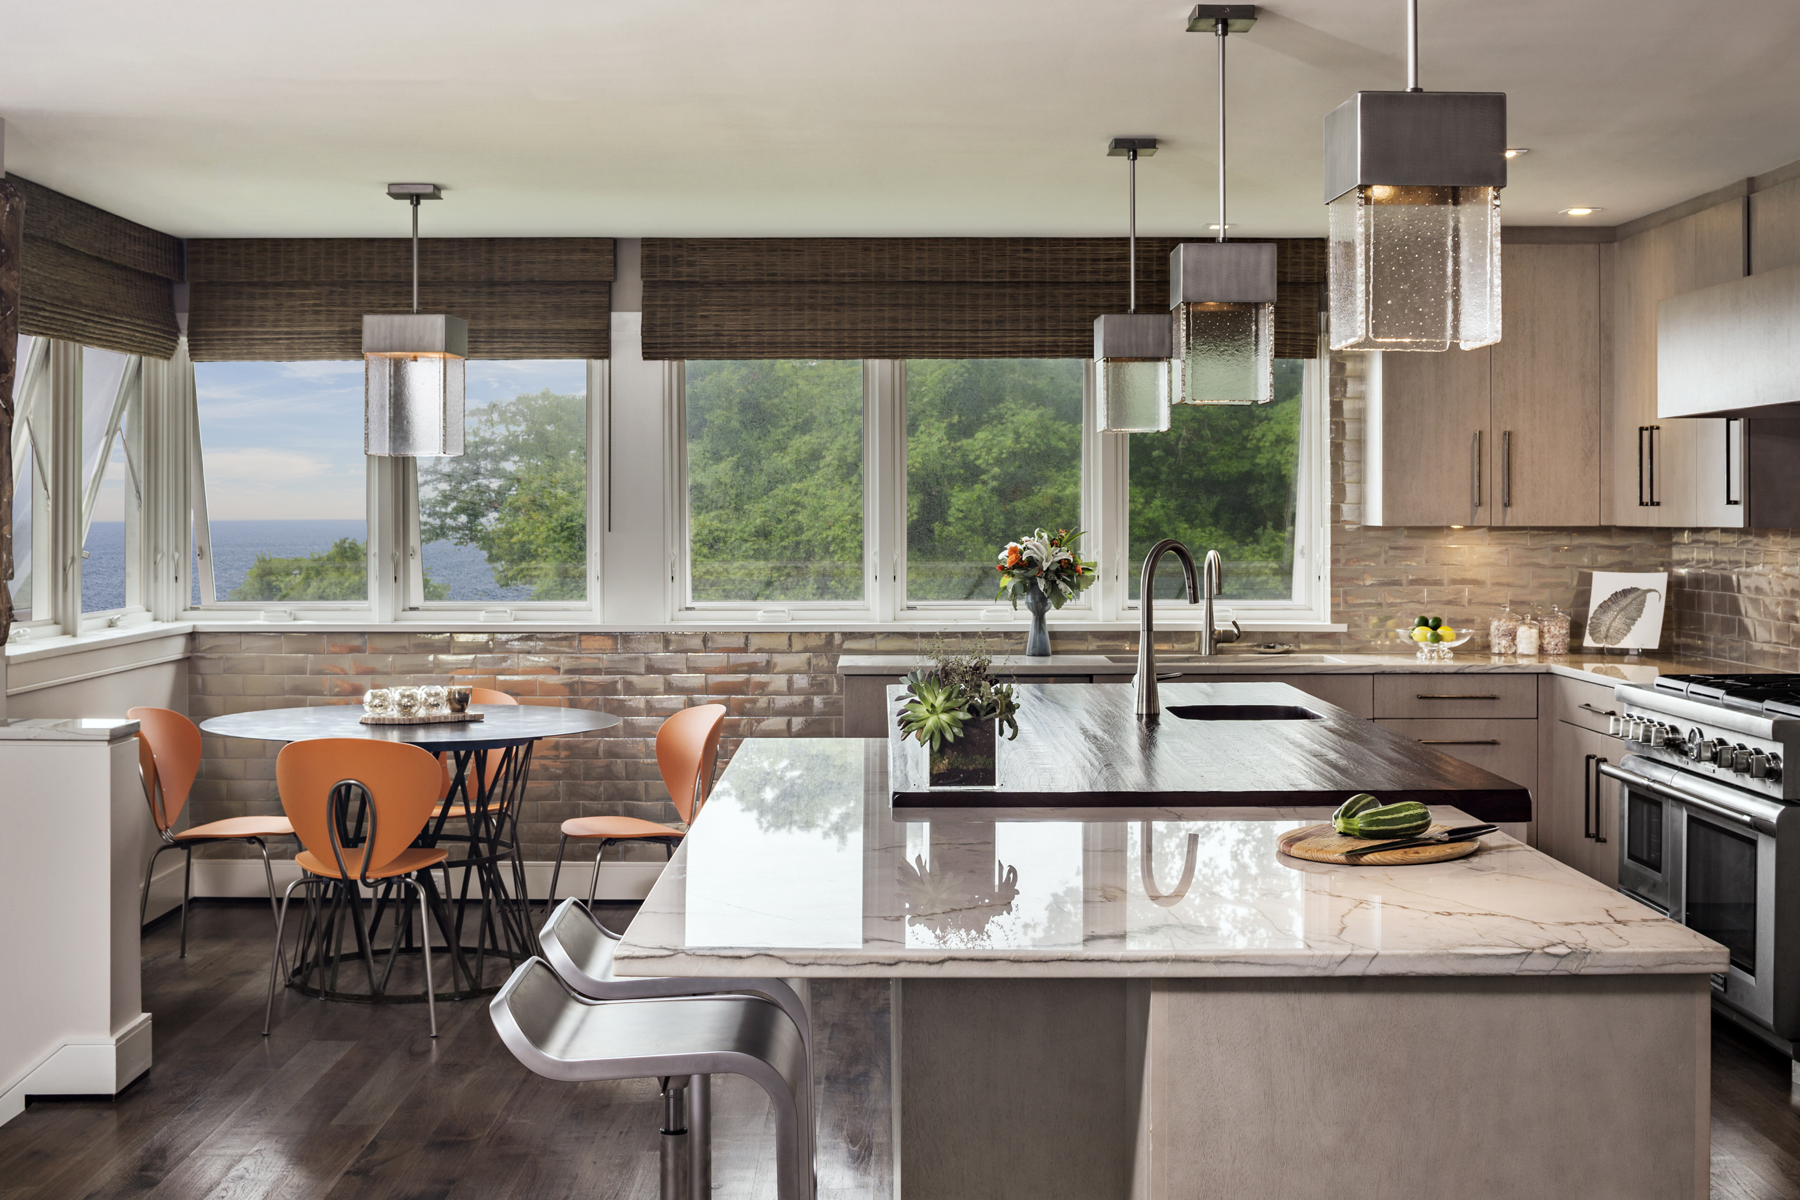 Transitional kitchen features two walls of windows, flat panel, framless, fully custom mahogany cabinets by Bilotta, metallic, tectured wallcovering, dark plank flooring and an island with marble countertop and seating. Design by Randy O'Kane, CKD, of Bilotta Kitchens.